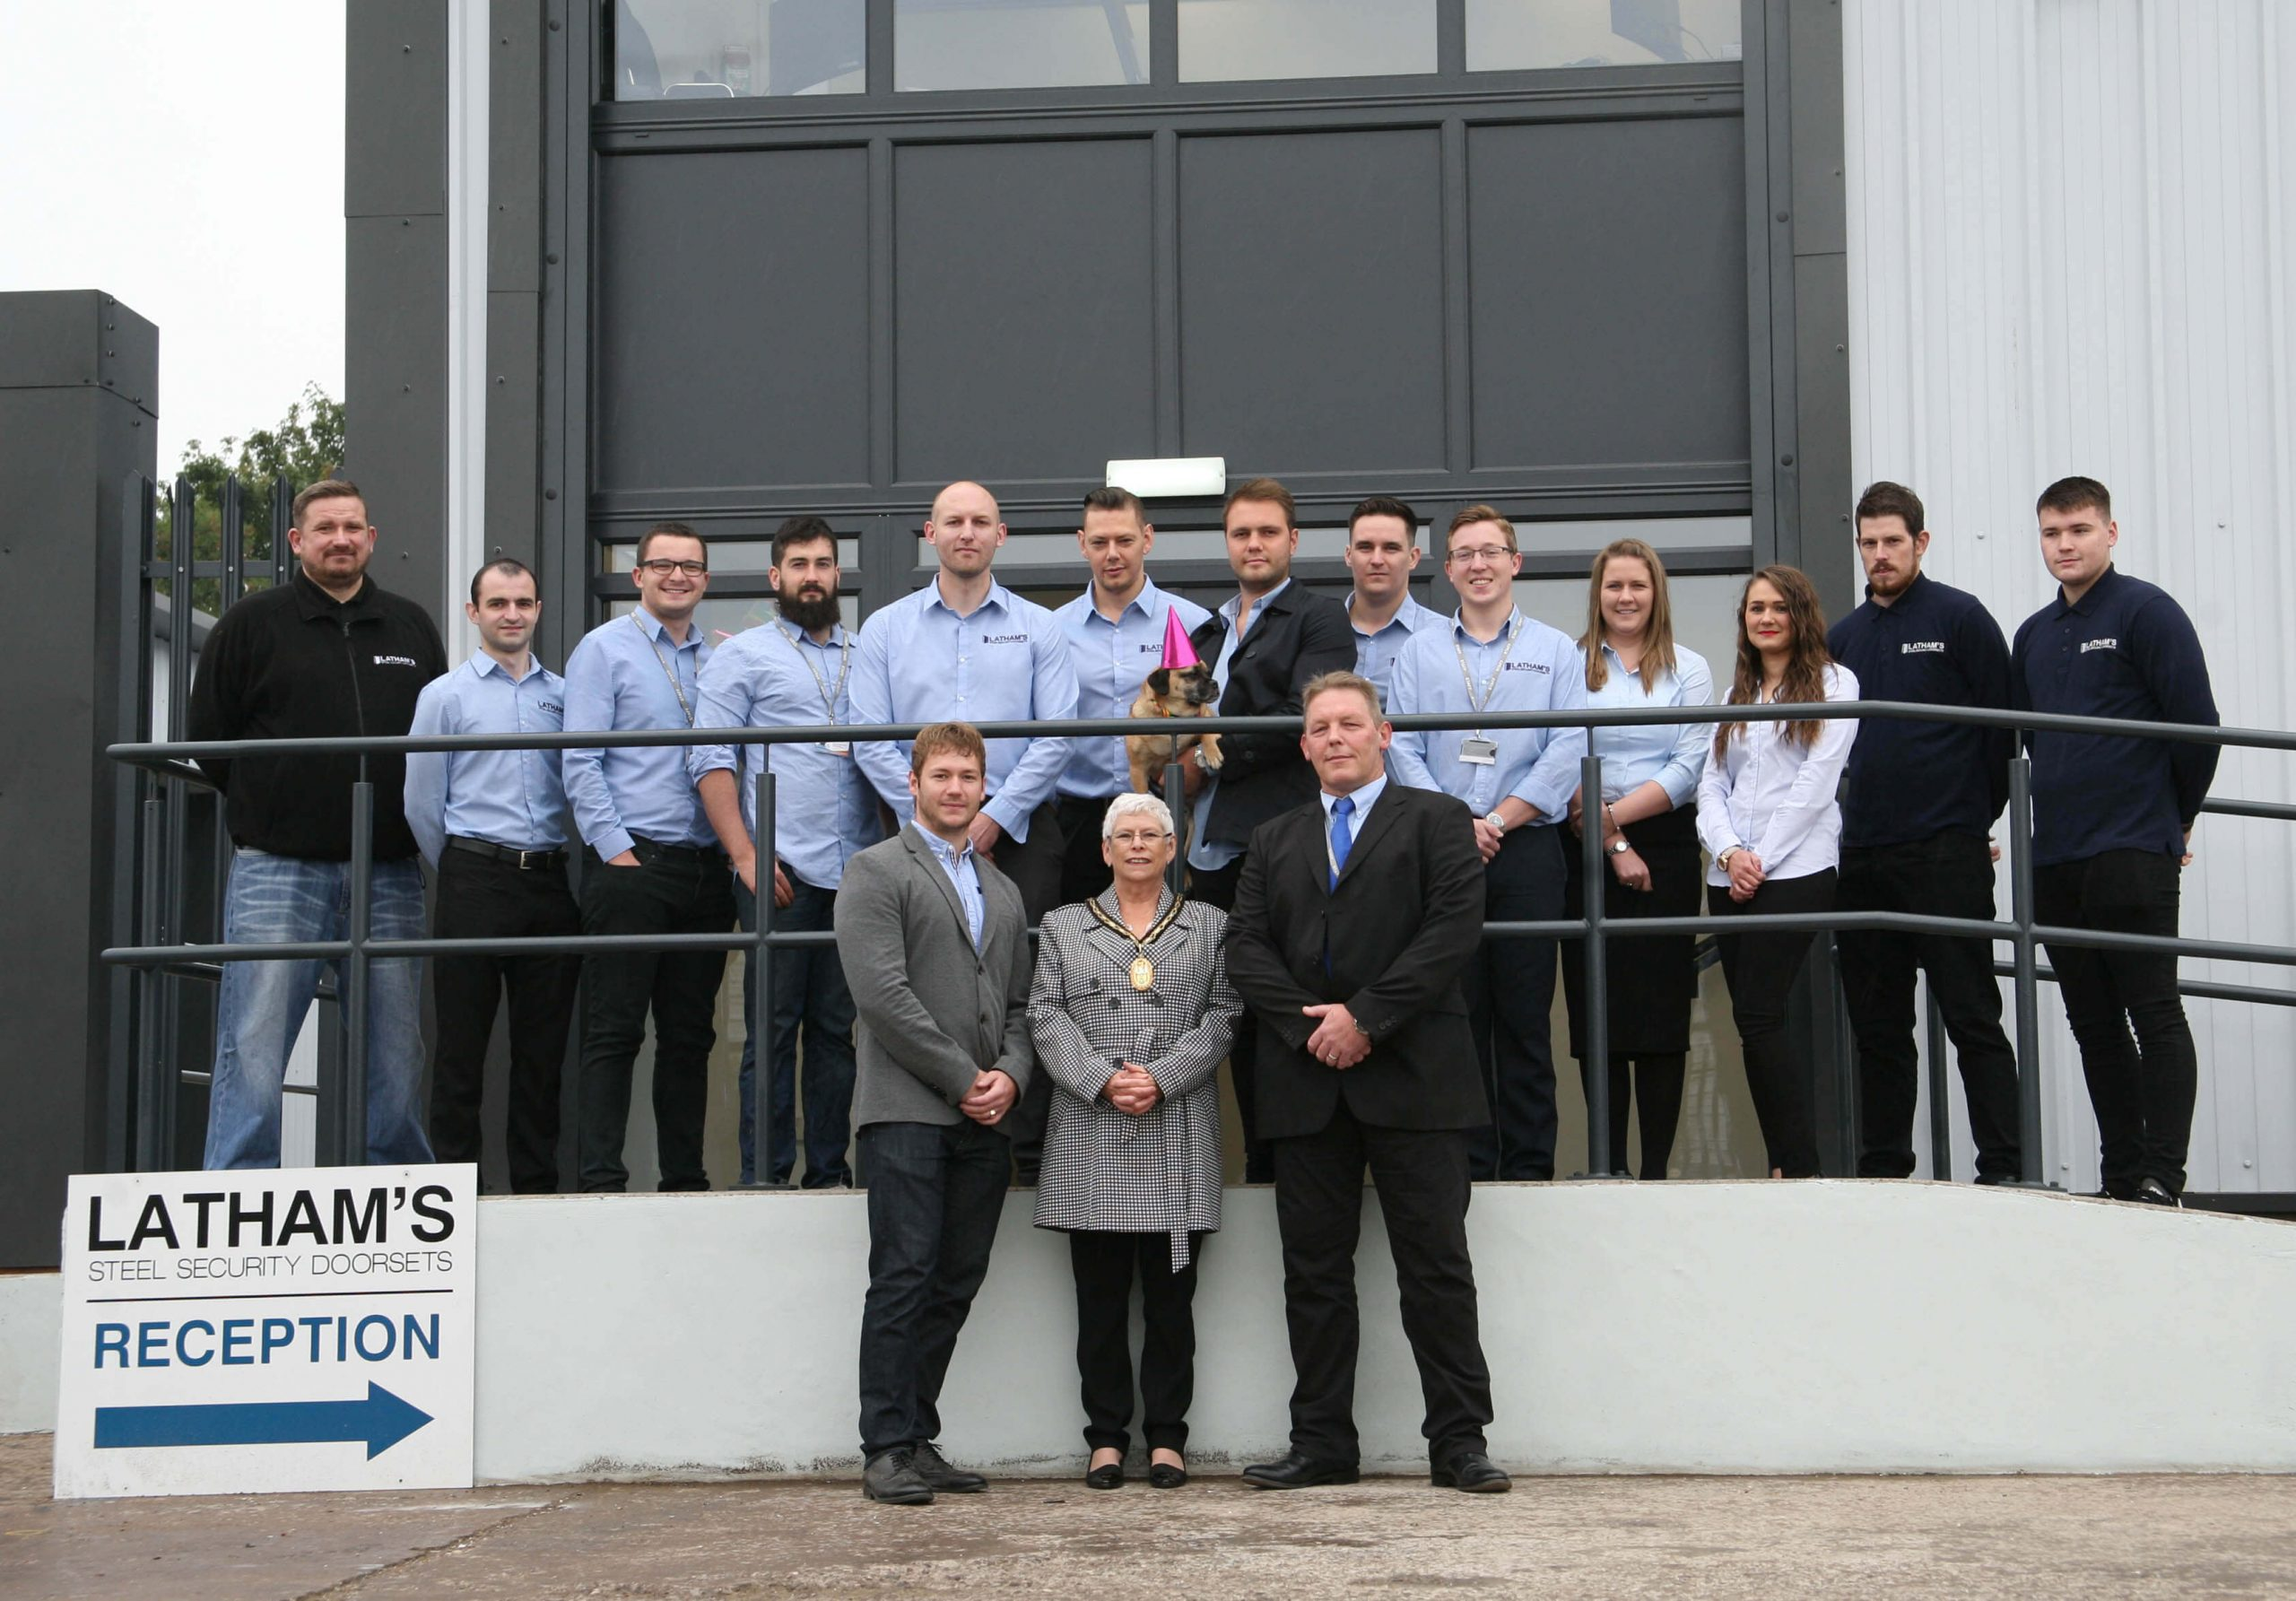 Latham's staff, and Sandwell Deputy Mayor outside their new offices